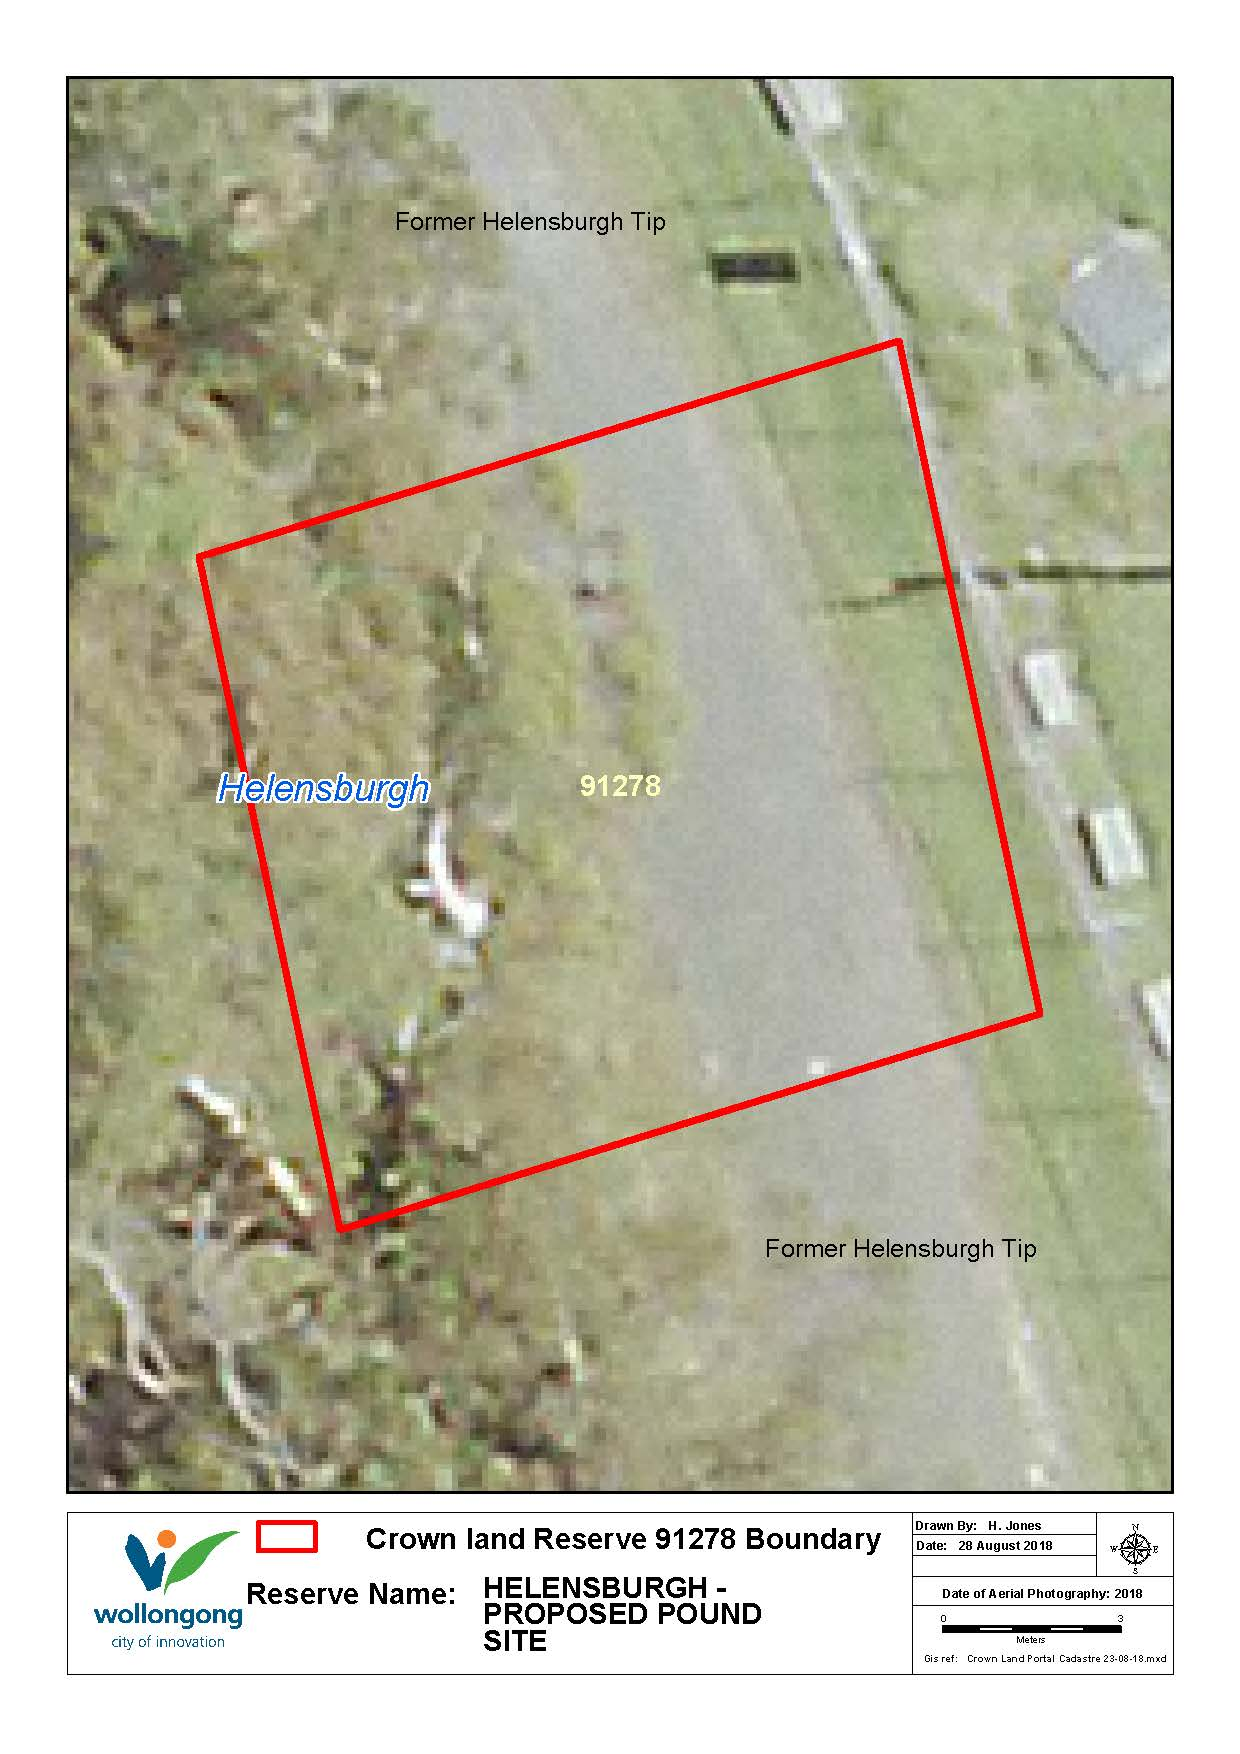 Helensburgh proposed pound site reserve 91278 map surrouned by former tip z19 169109